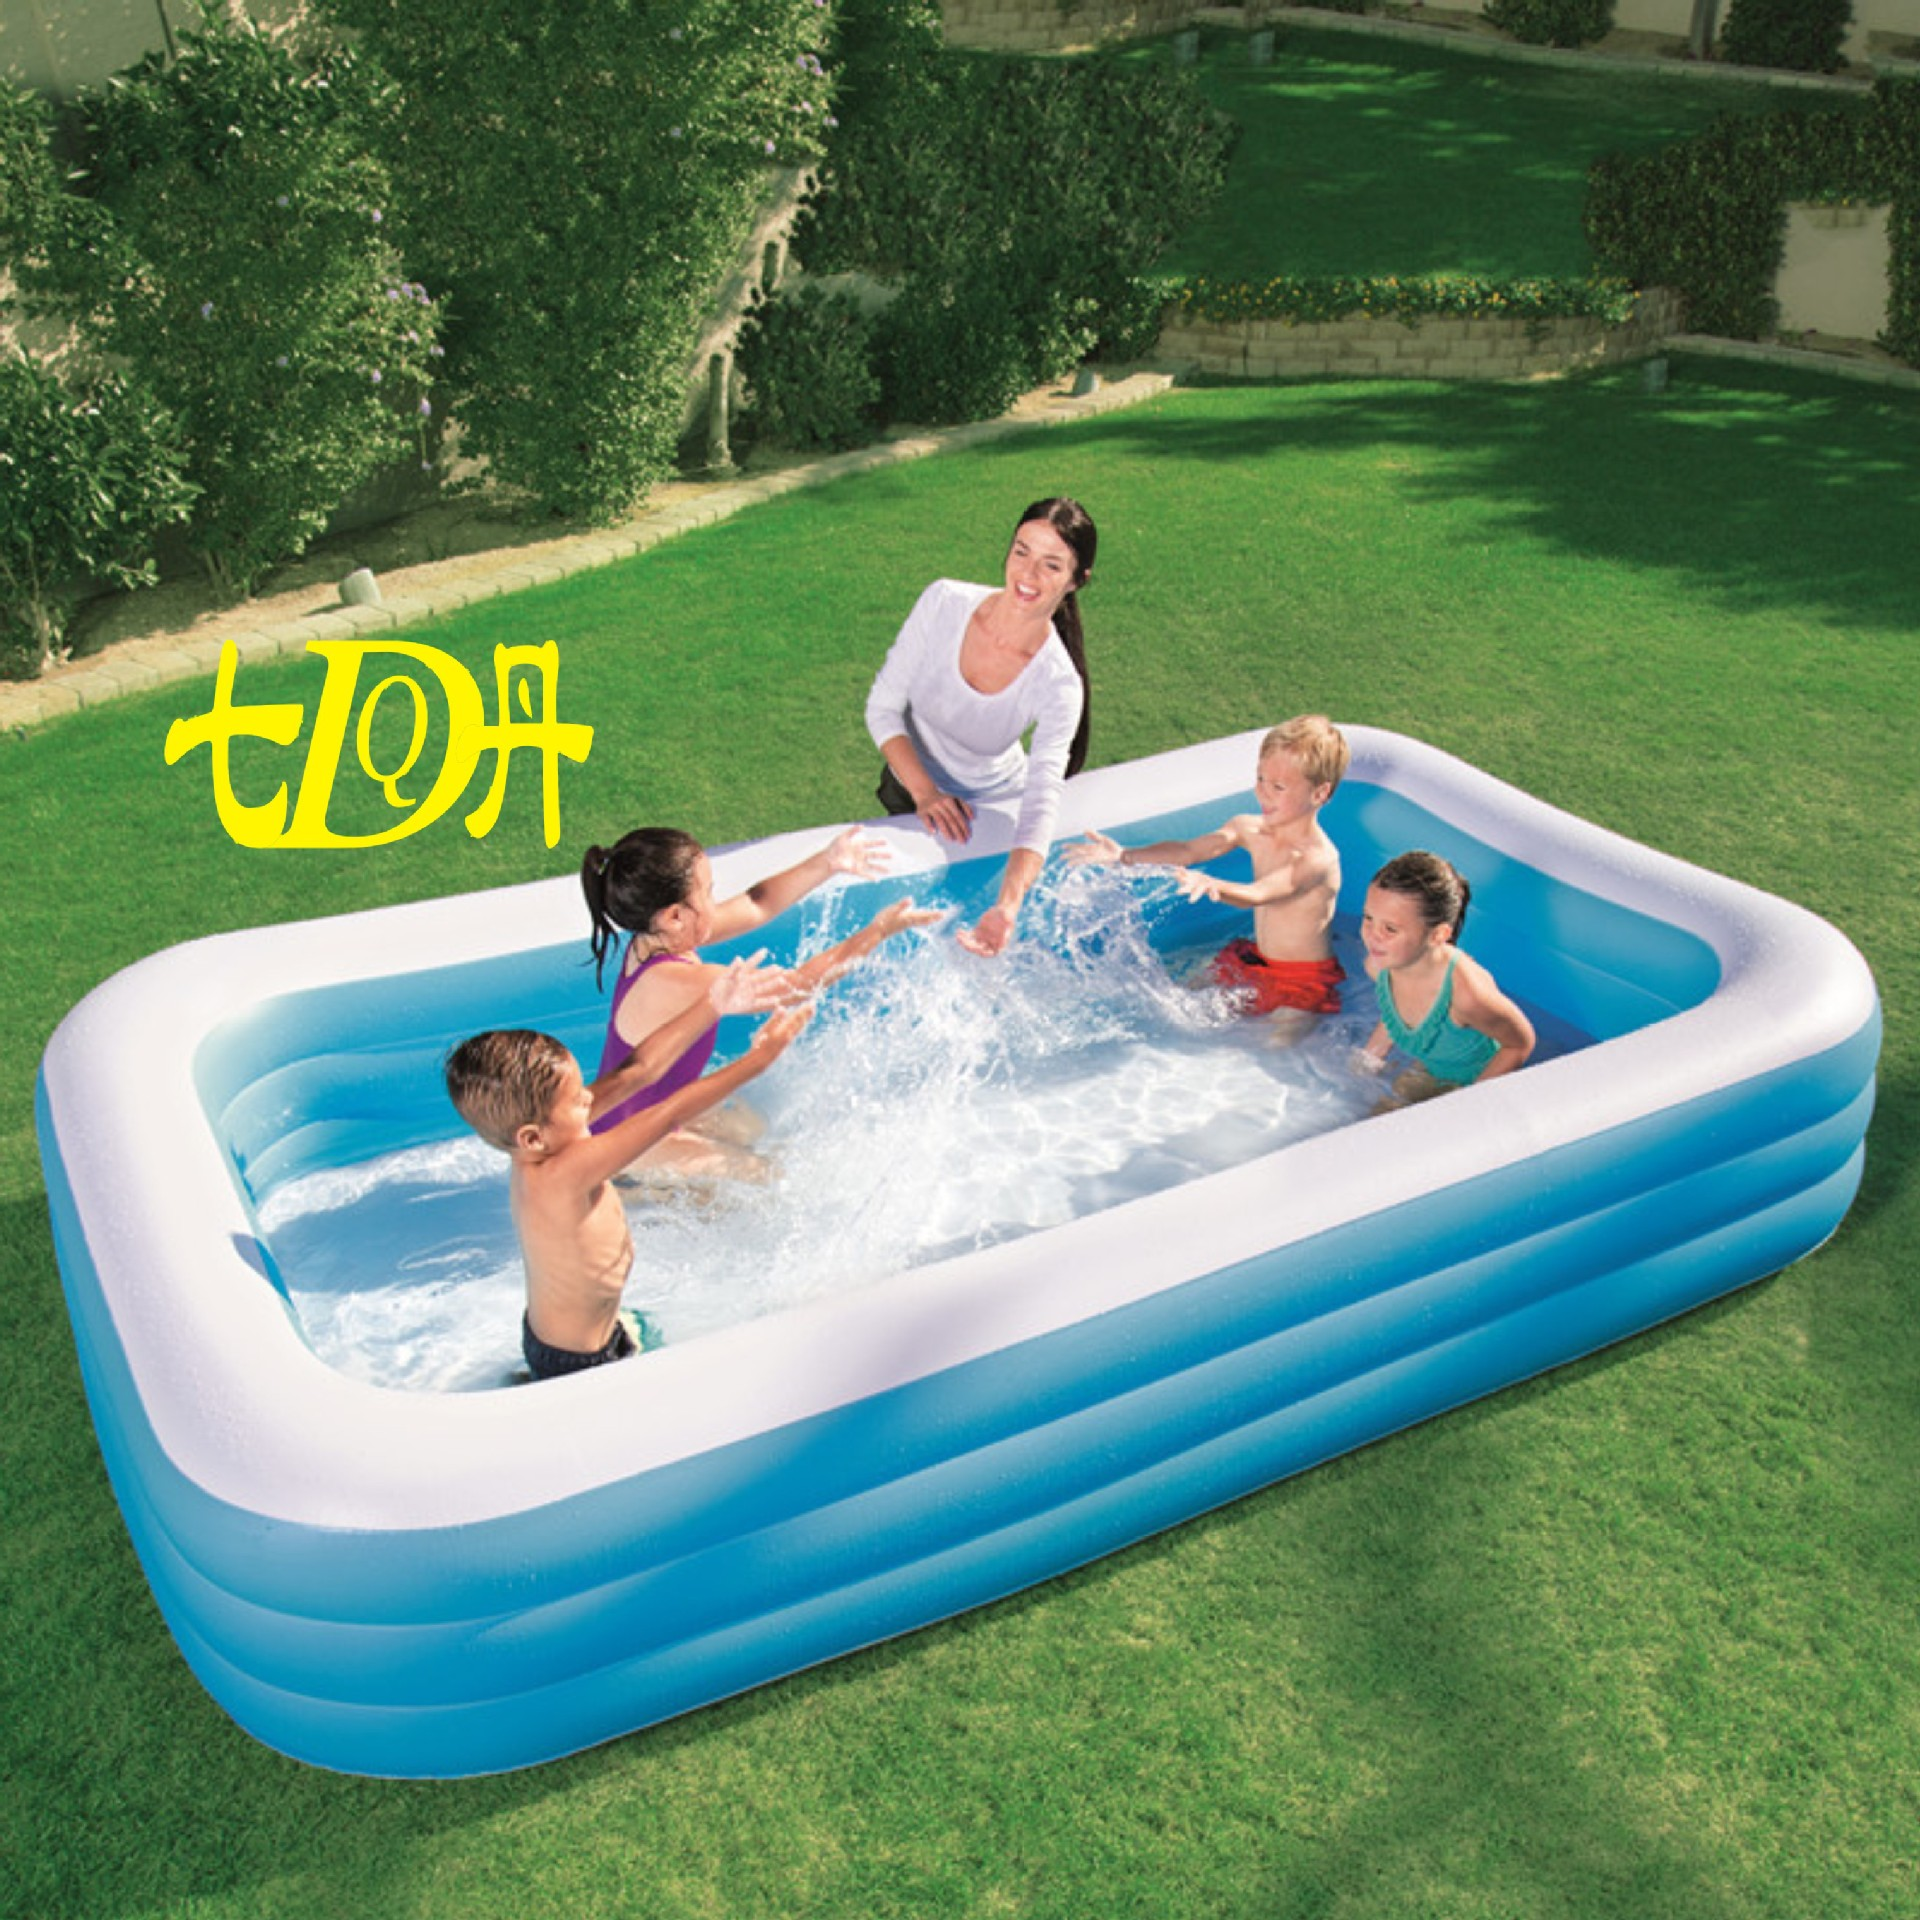 Baby Inflatable Pool Family Inflatable Pool Adult Bath Barrel Children Swimming Pool JjK1aMCyY9